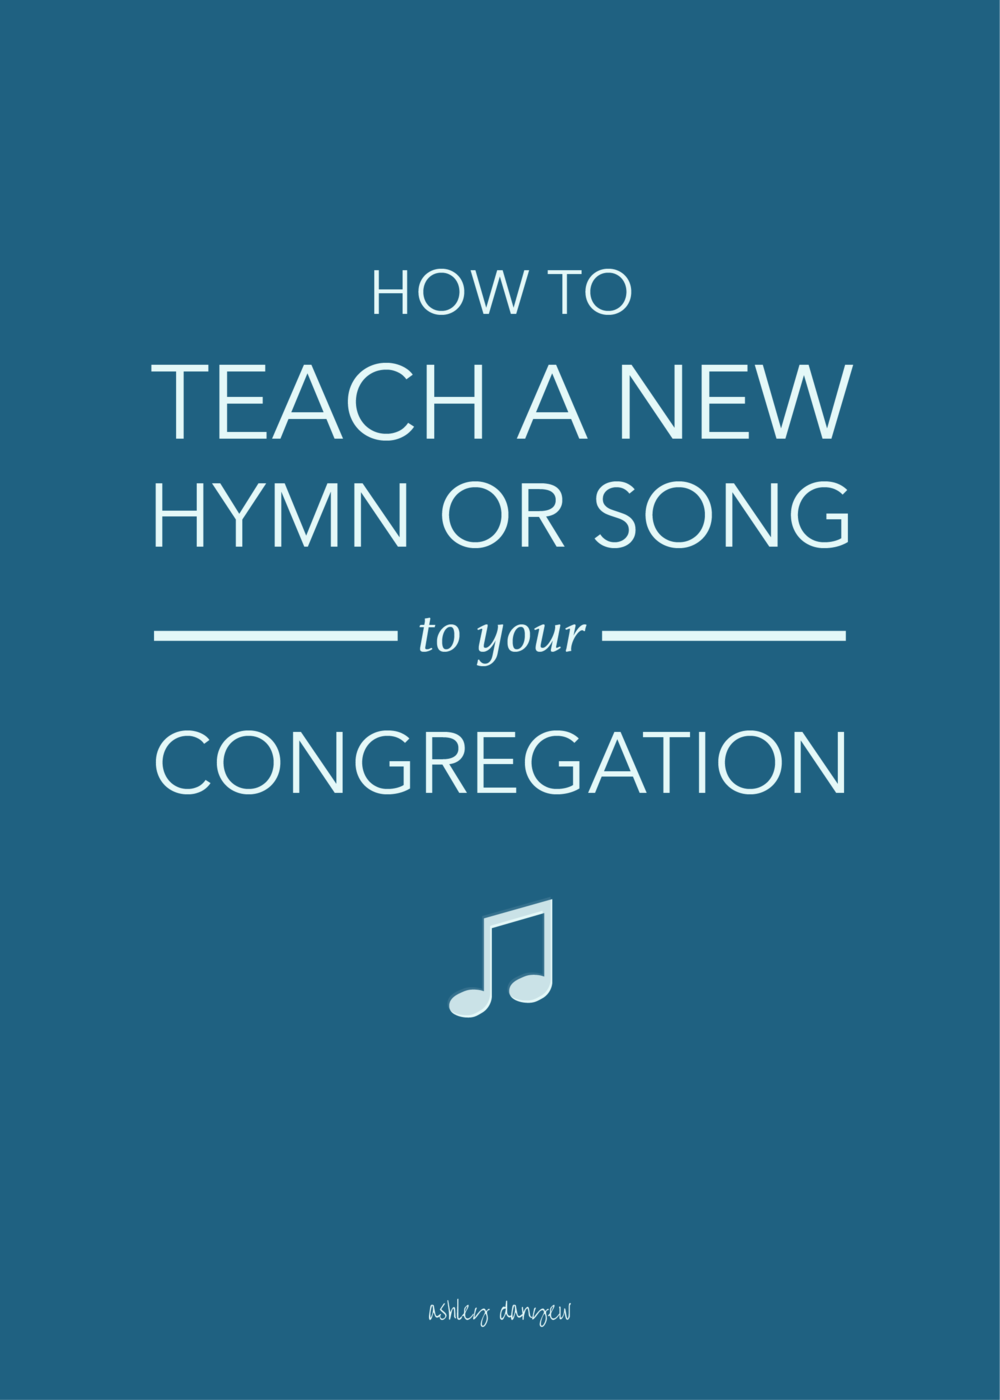 Copy of How to Teach a New Hymn or Song to Your Congregation